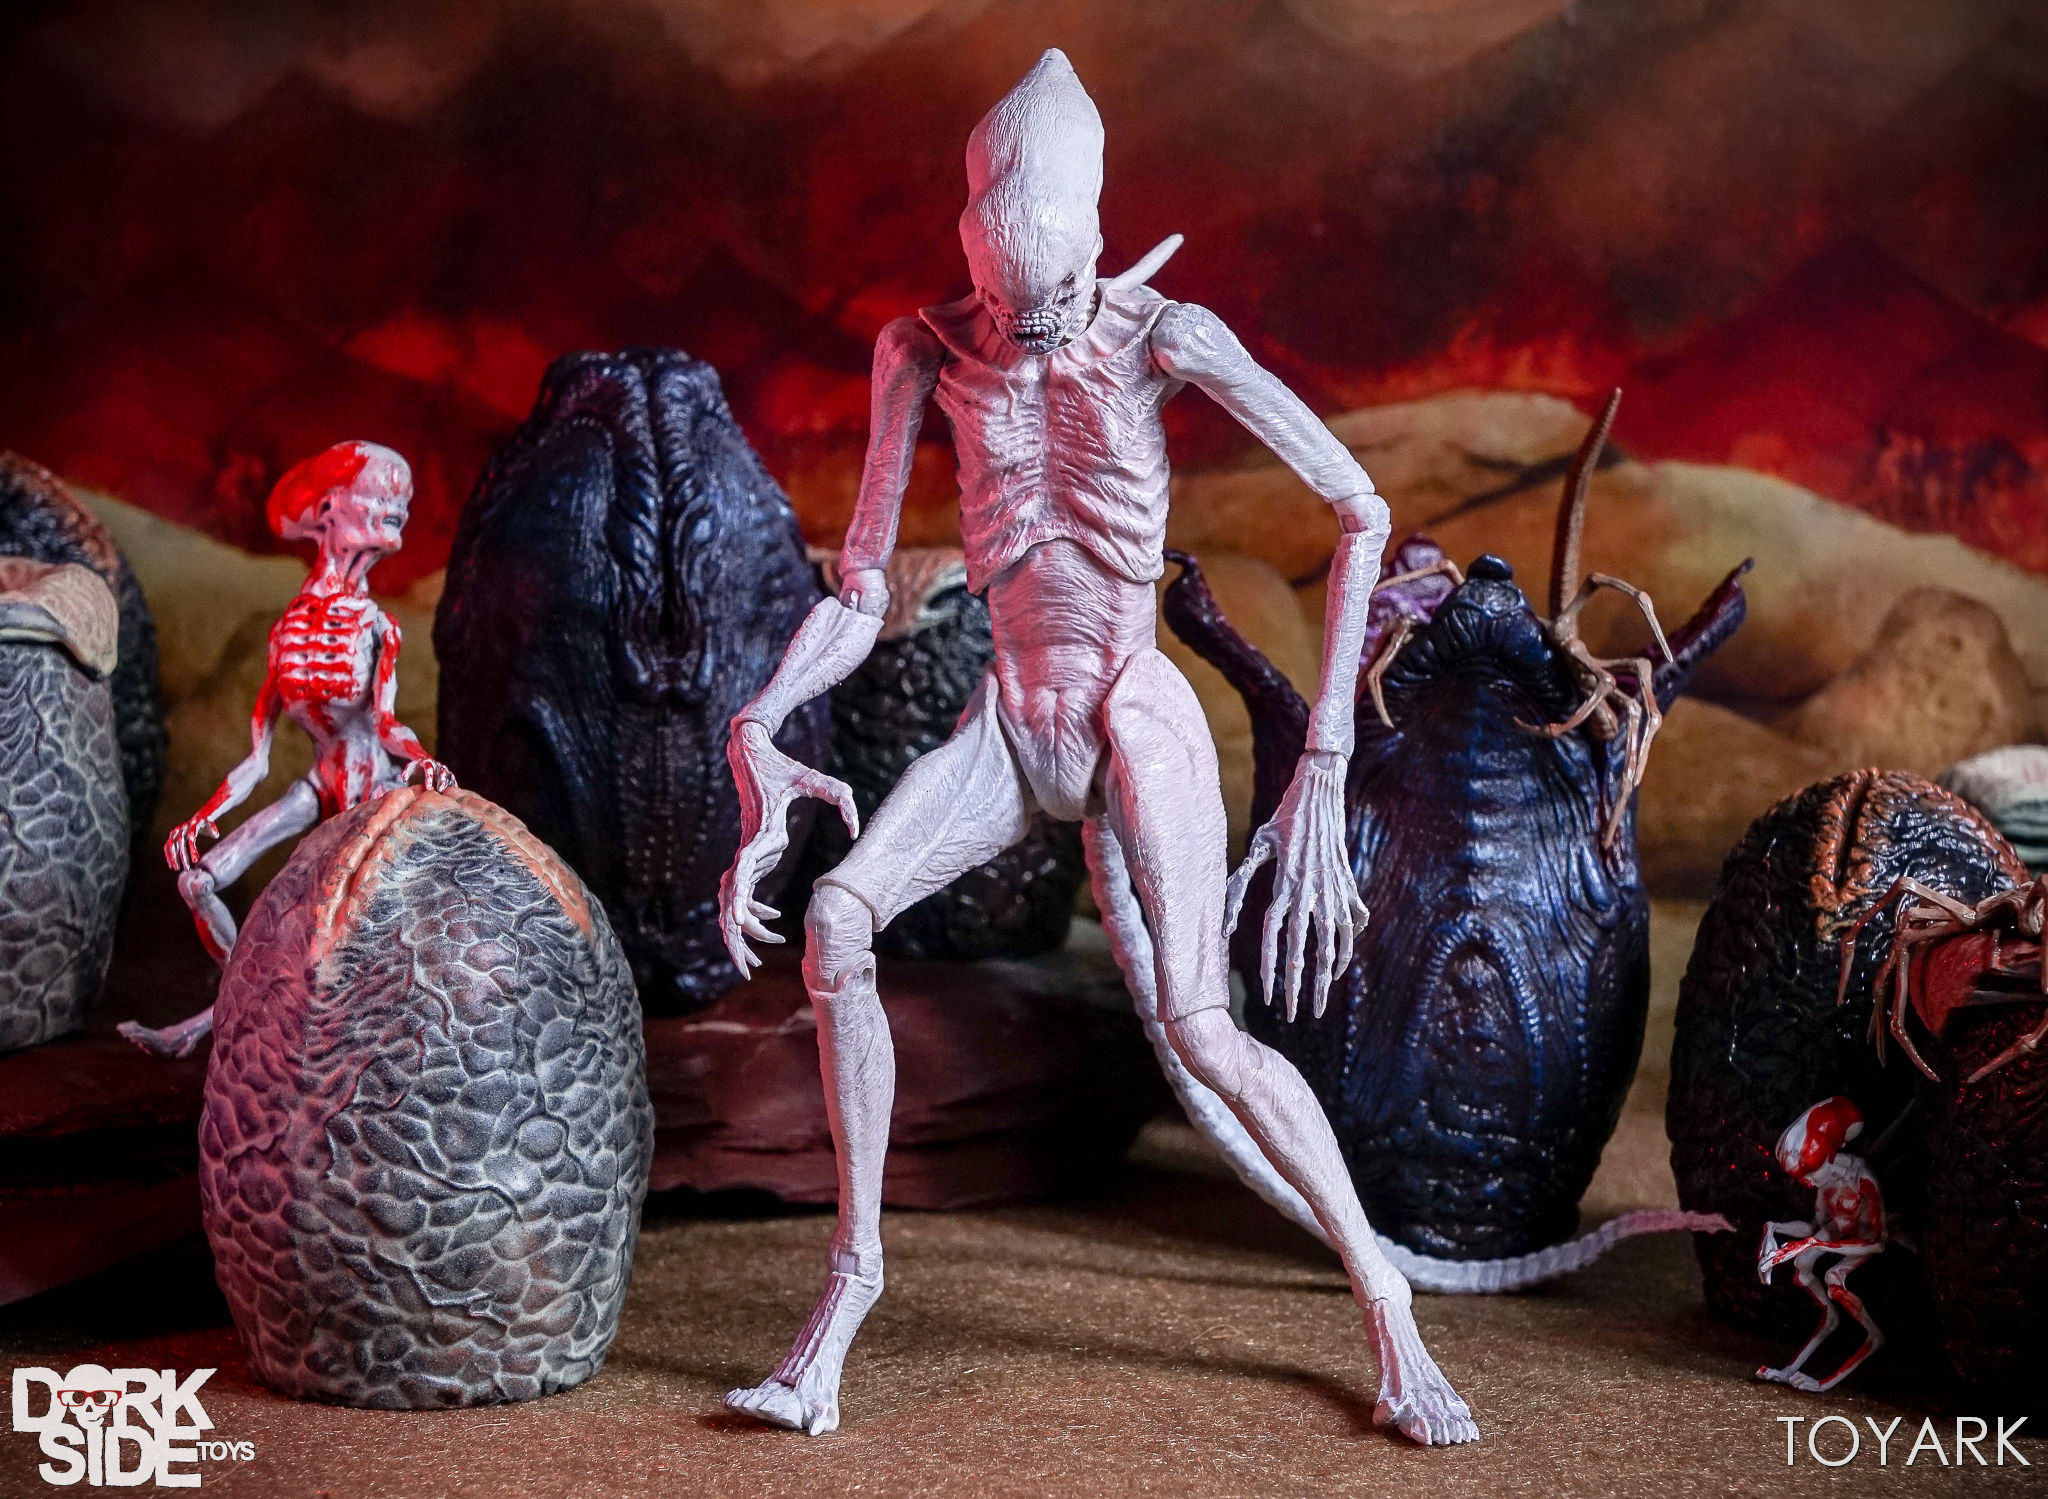 http://news.toyark.com/wp-content/uploads/sites/4/2017/08/NECA-Alien-Covenant-Figures-046.jpg